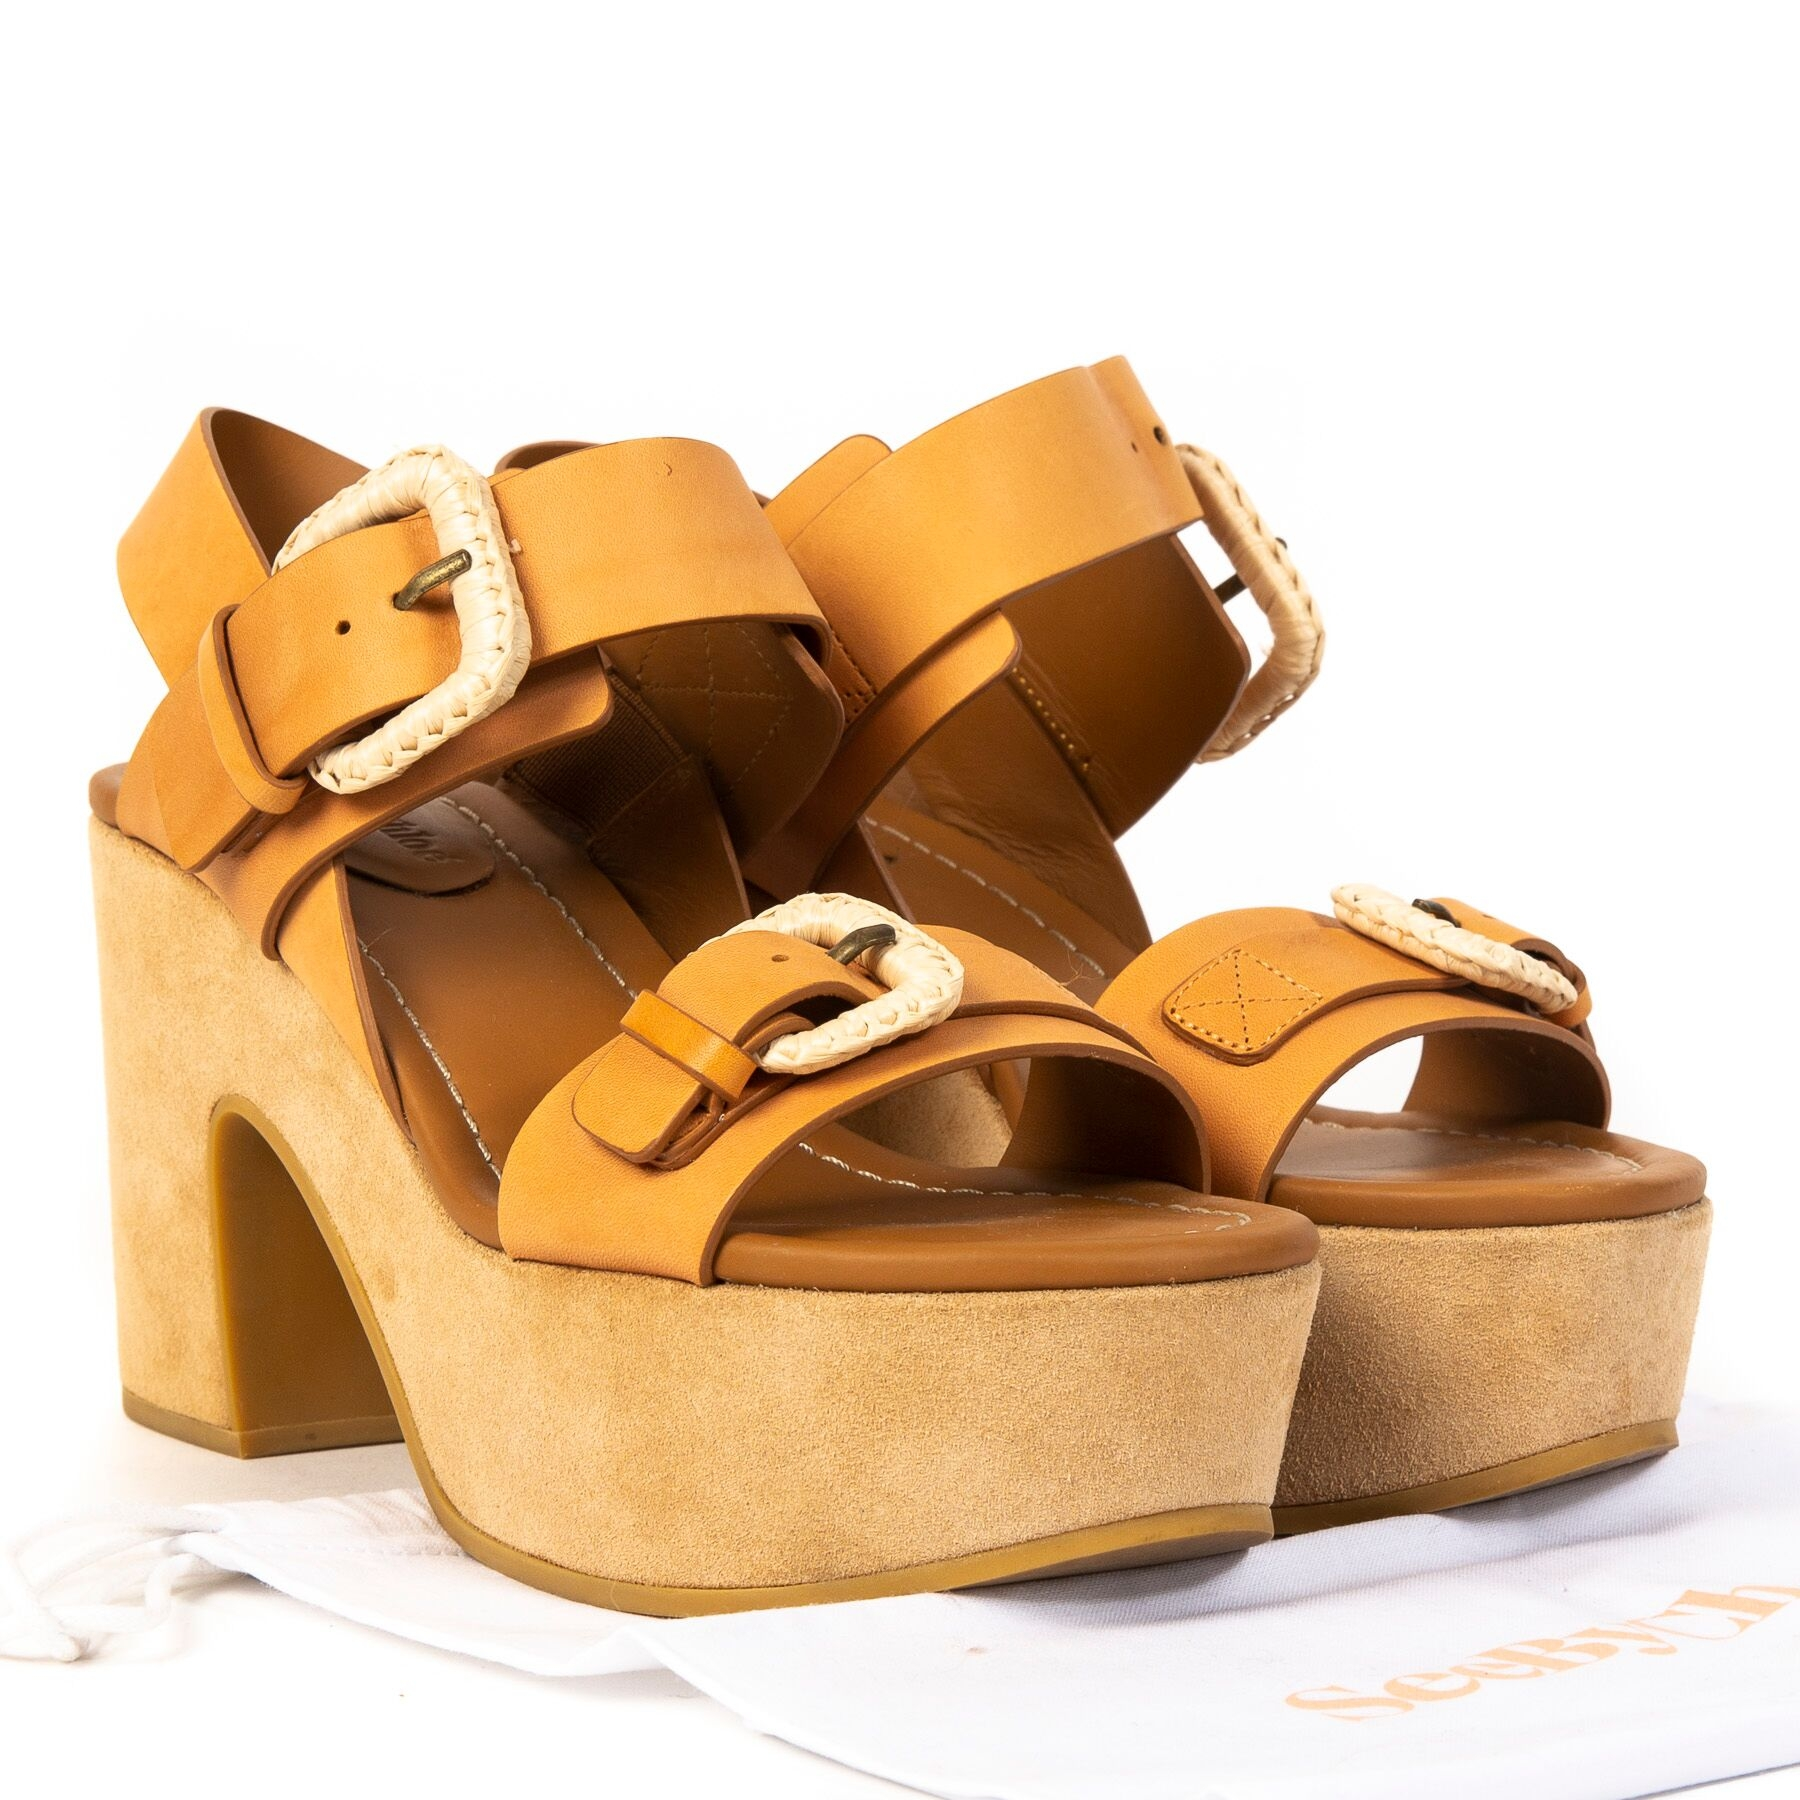 Buy authentic secondhand See By Chloé Camel Nora Sandals - Size 38  at online webshop LabelLOV.